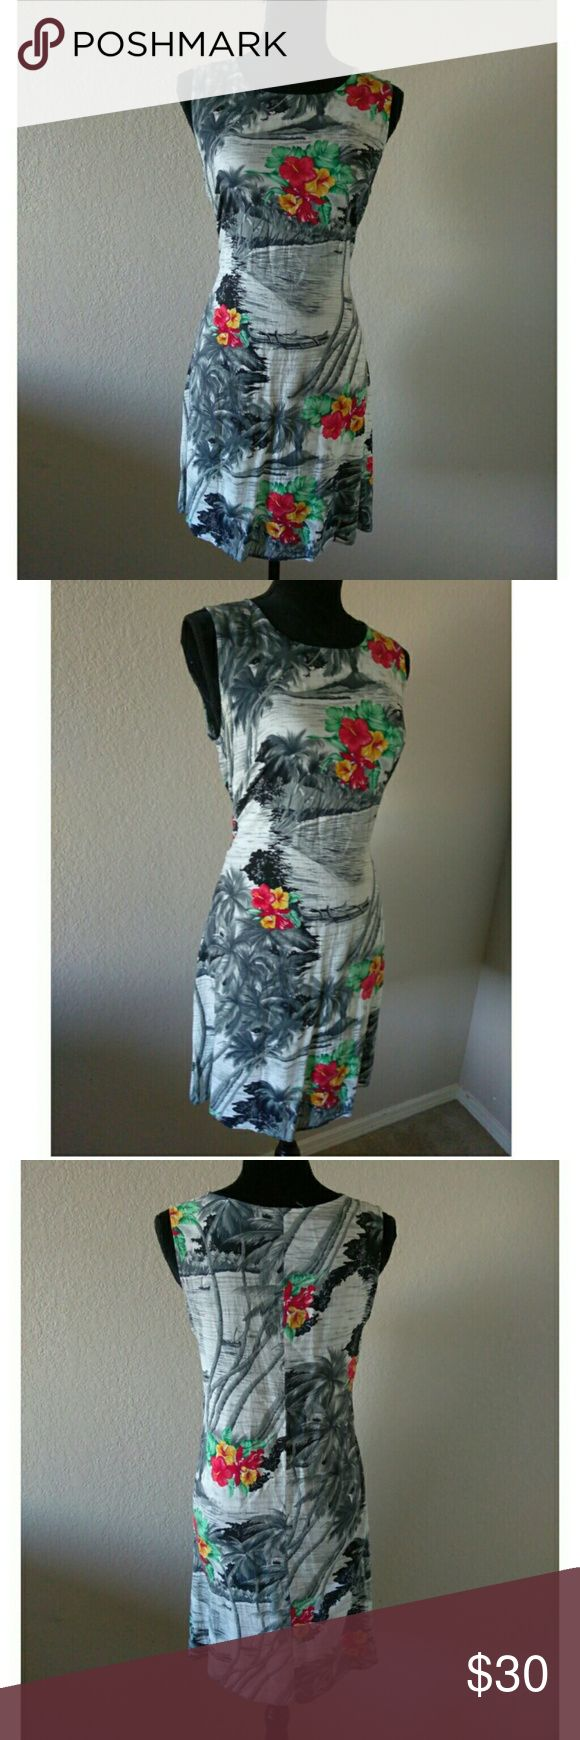 Vintage Hawaiian Theme Dress Gorgeous and comfortably sheer vintage Hawaiian dress. Brand is called Notation Clothing. There is no fabric/ size tag. I am going to guess a M/L. Approx measurements are chest 17 in. length 34 in. Good condition for vintage. Vintage Dresses